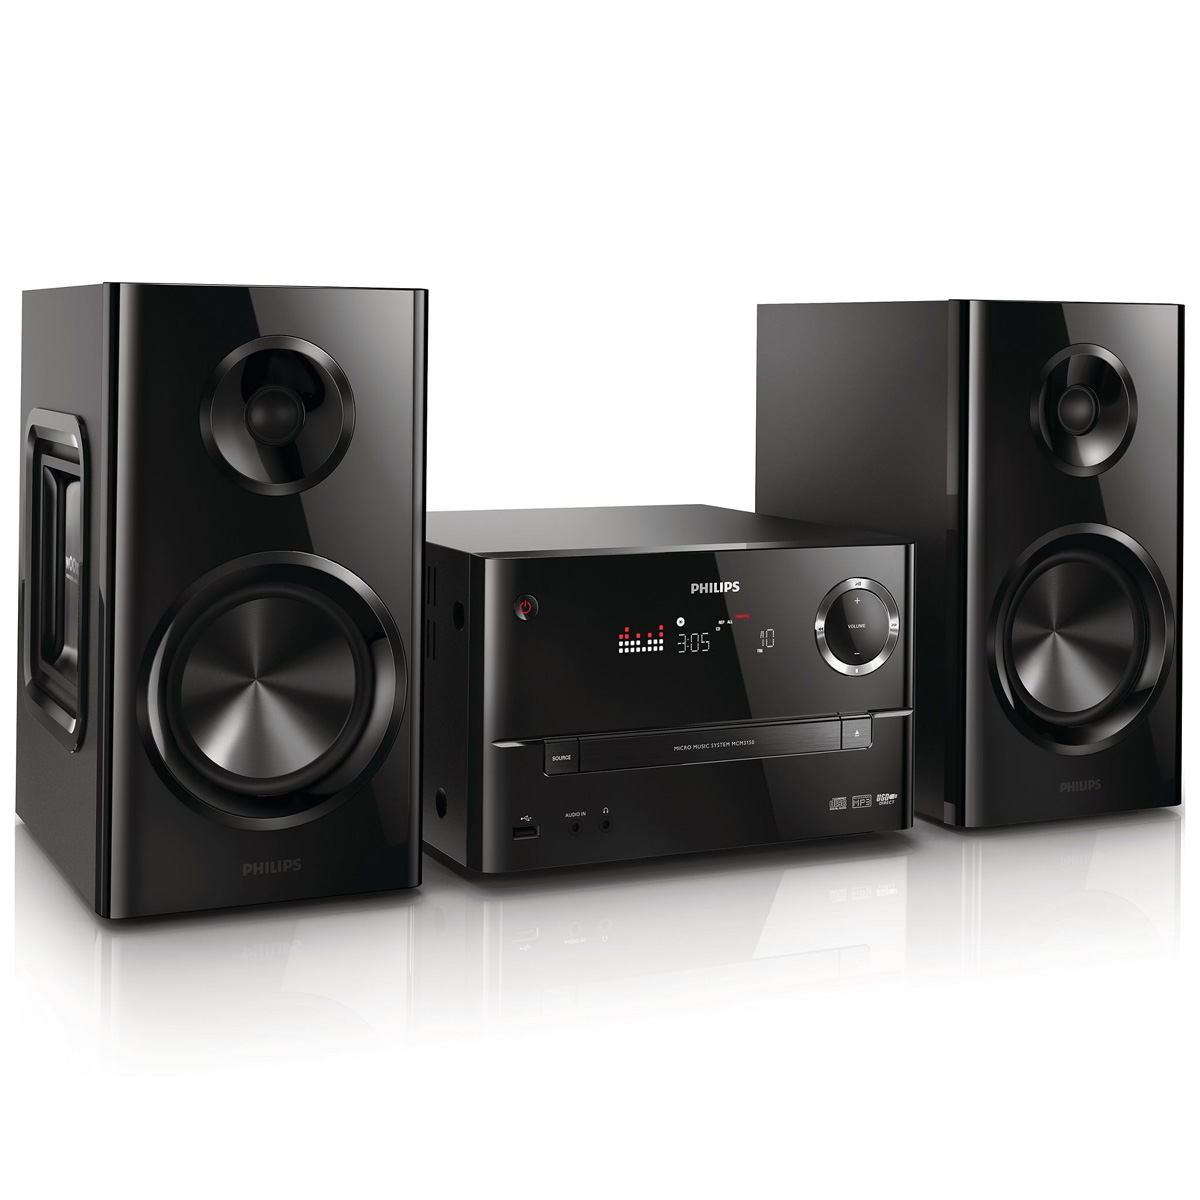 philips mcm3150 cha ne hifi philips sur. Black Bedroom Furniture Sets. Home Design Ideas